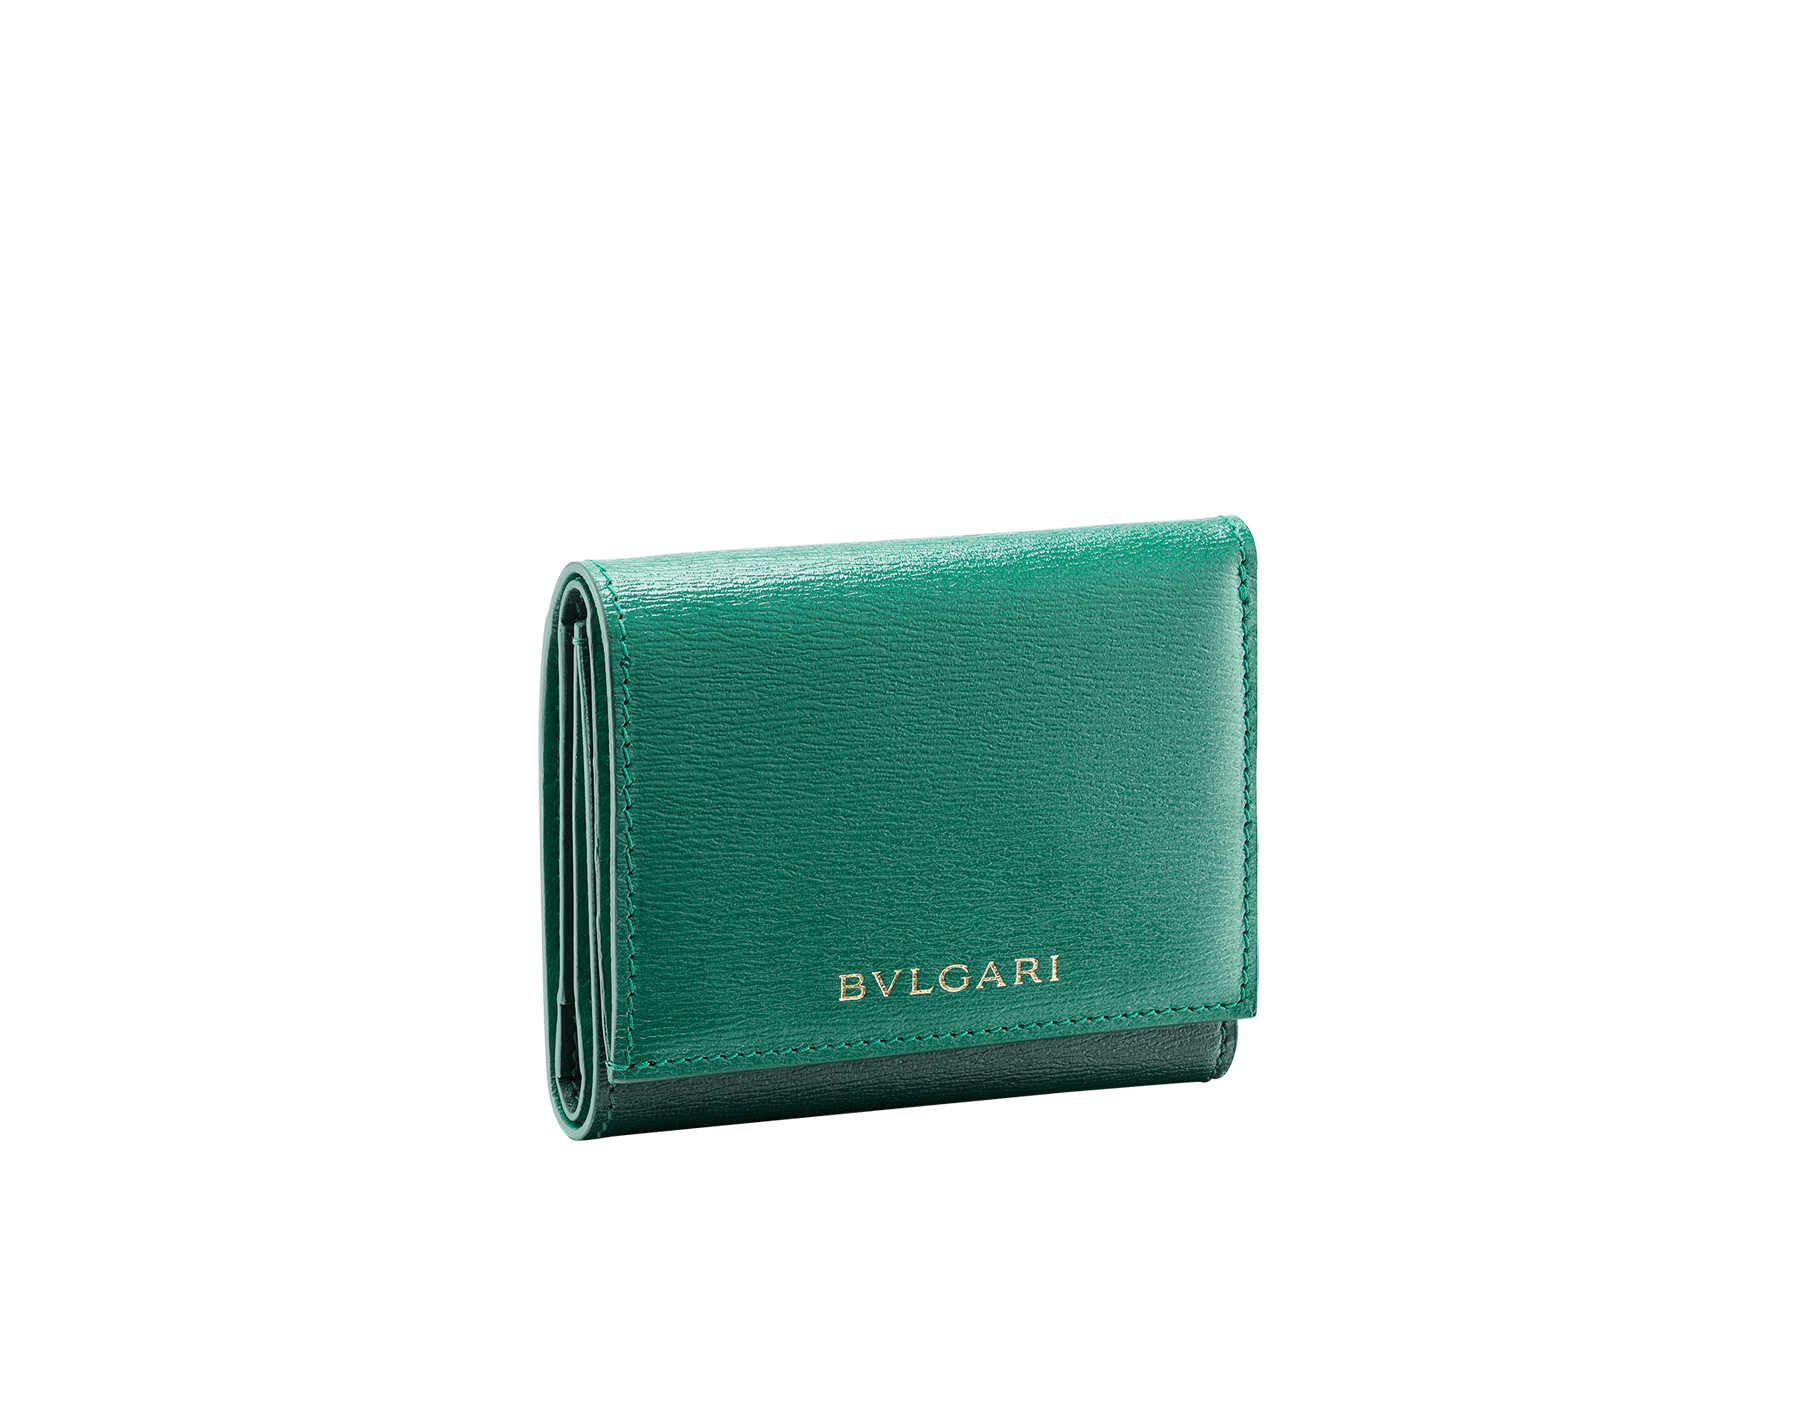 B.zero1 compact wallet in daisy topaz, taffy quartz goatskin and taffy quartz nappa leather. Iconic B.zero1 zipper in light gold plated brass and two press stud closures. BZA-SLIMCOMPACT image 1